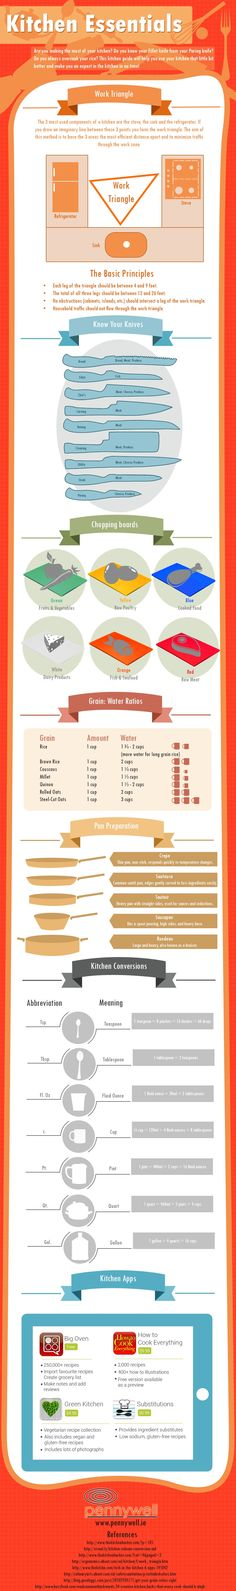 Know Your Kitchen with this Kitchen Essentials Infographic